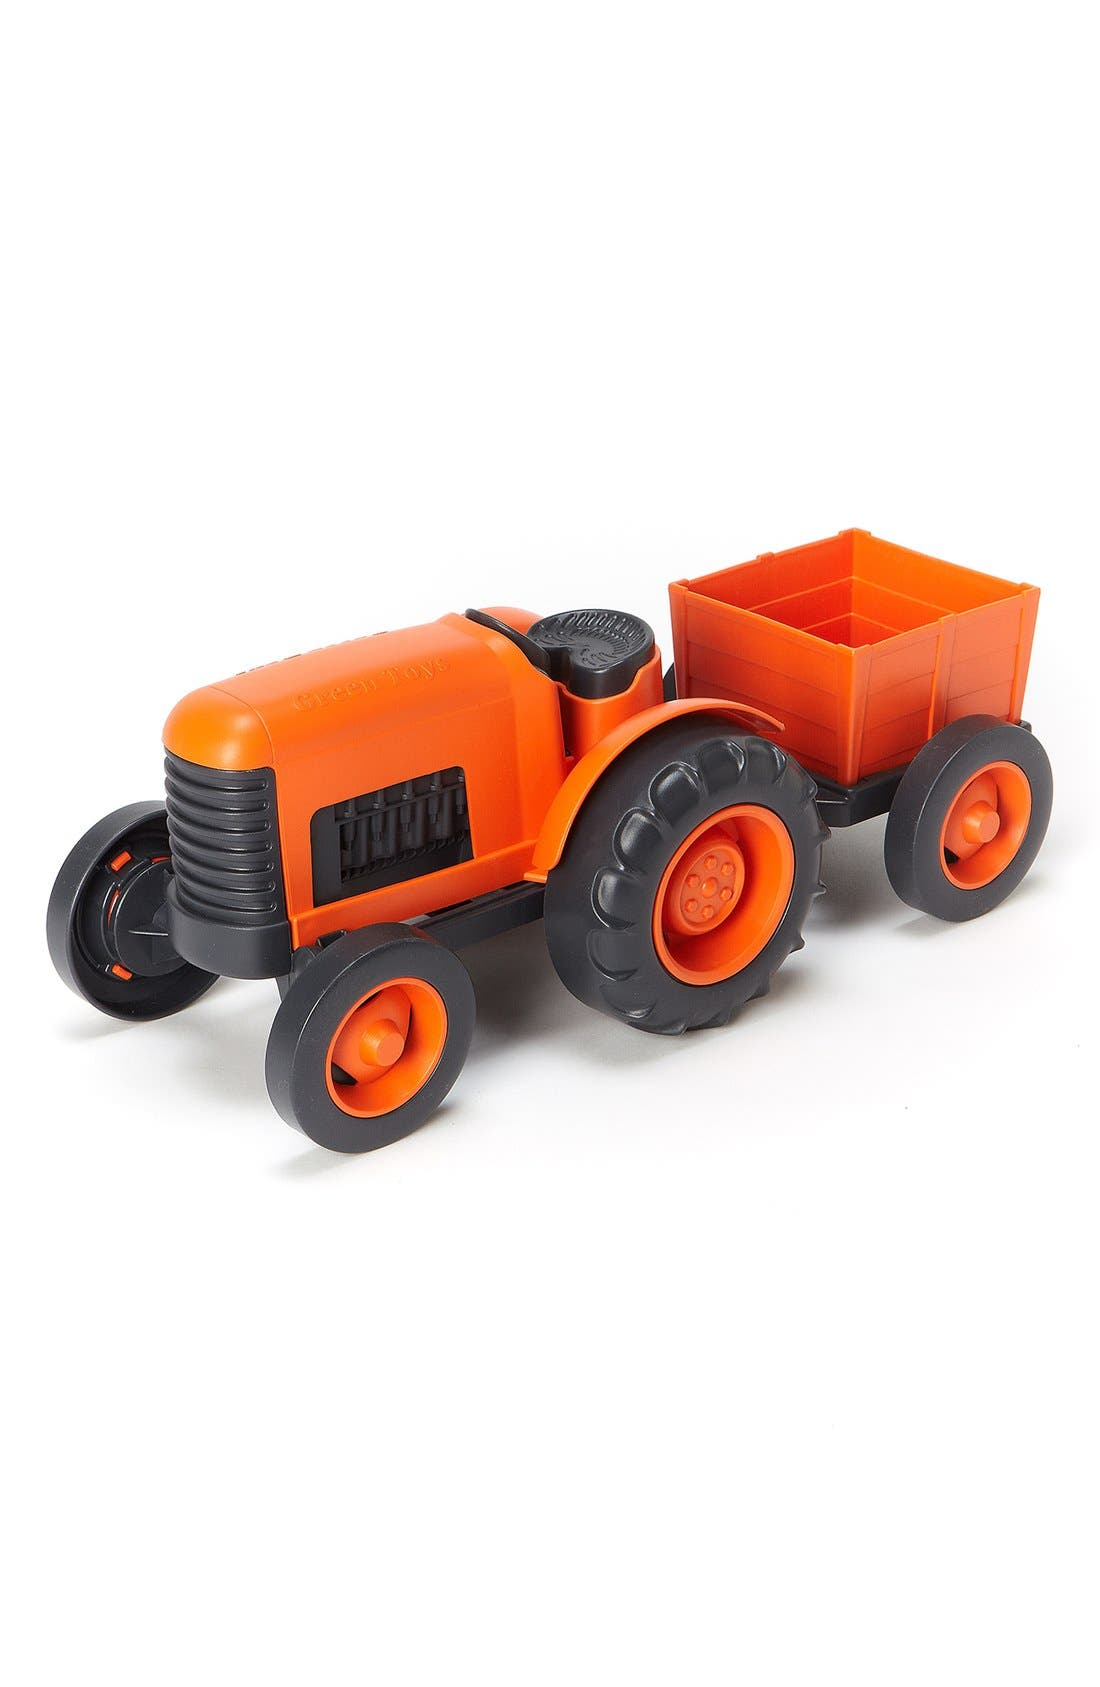 Main Image - Green Toys Toy Tractor Set